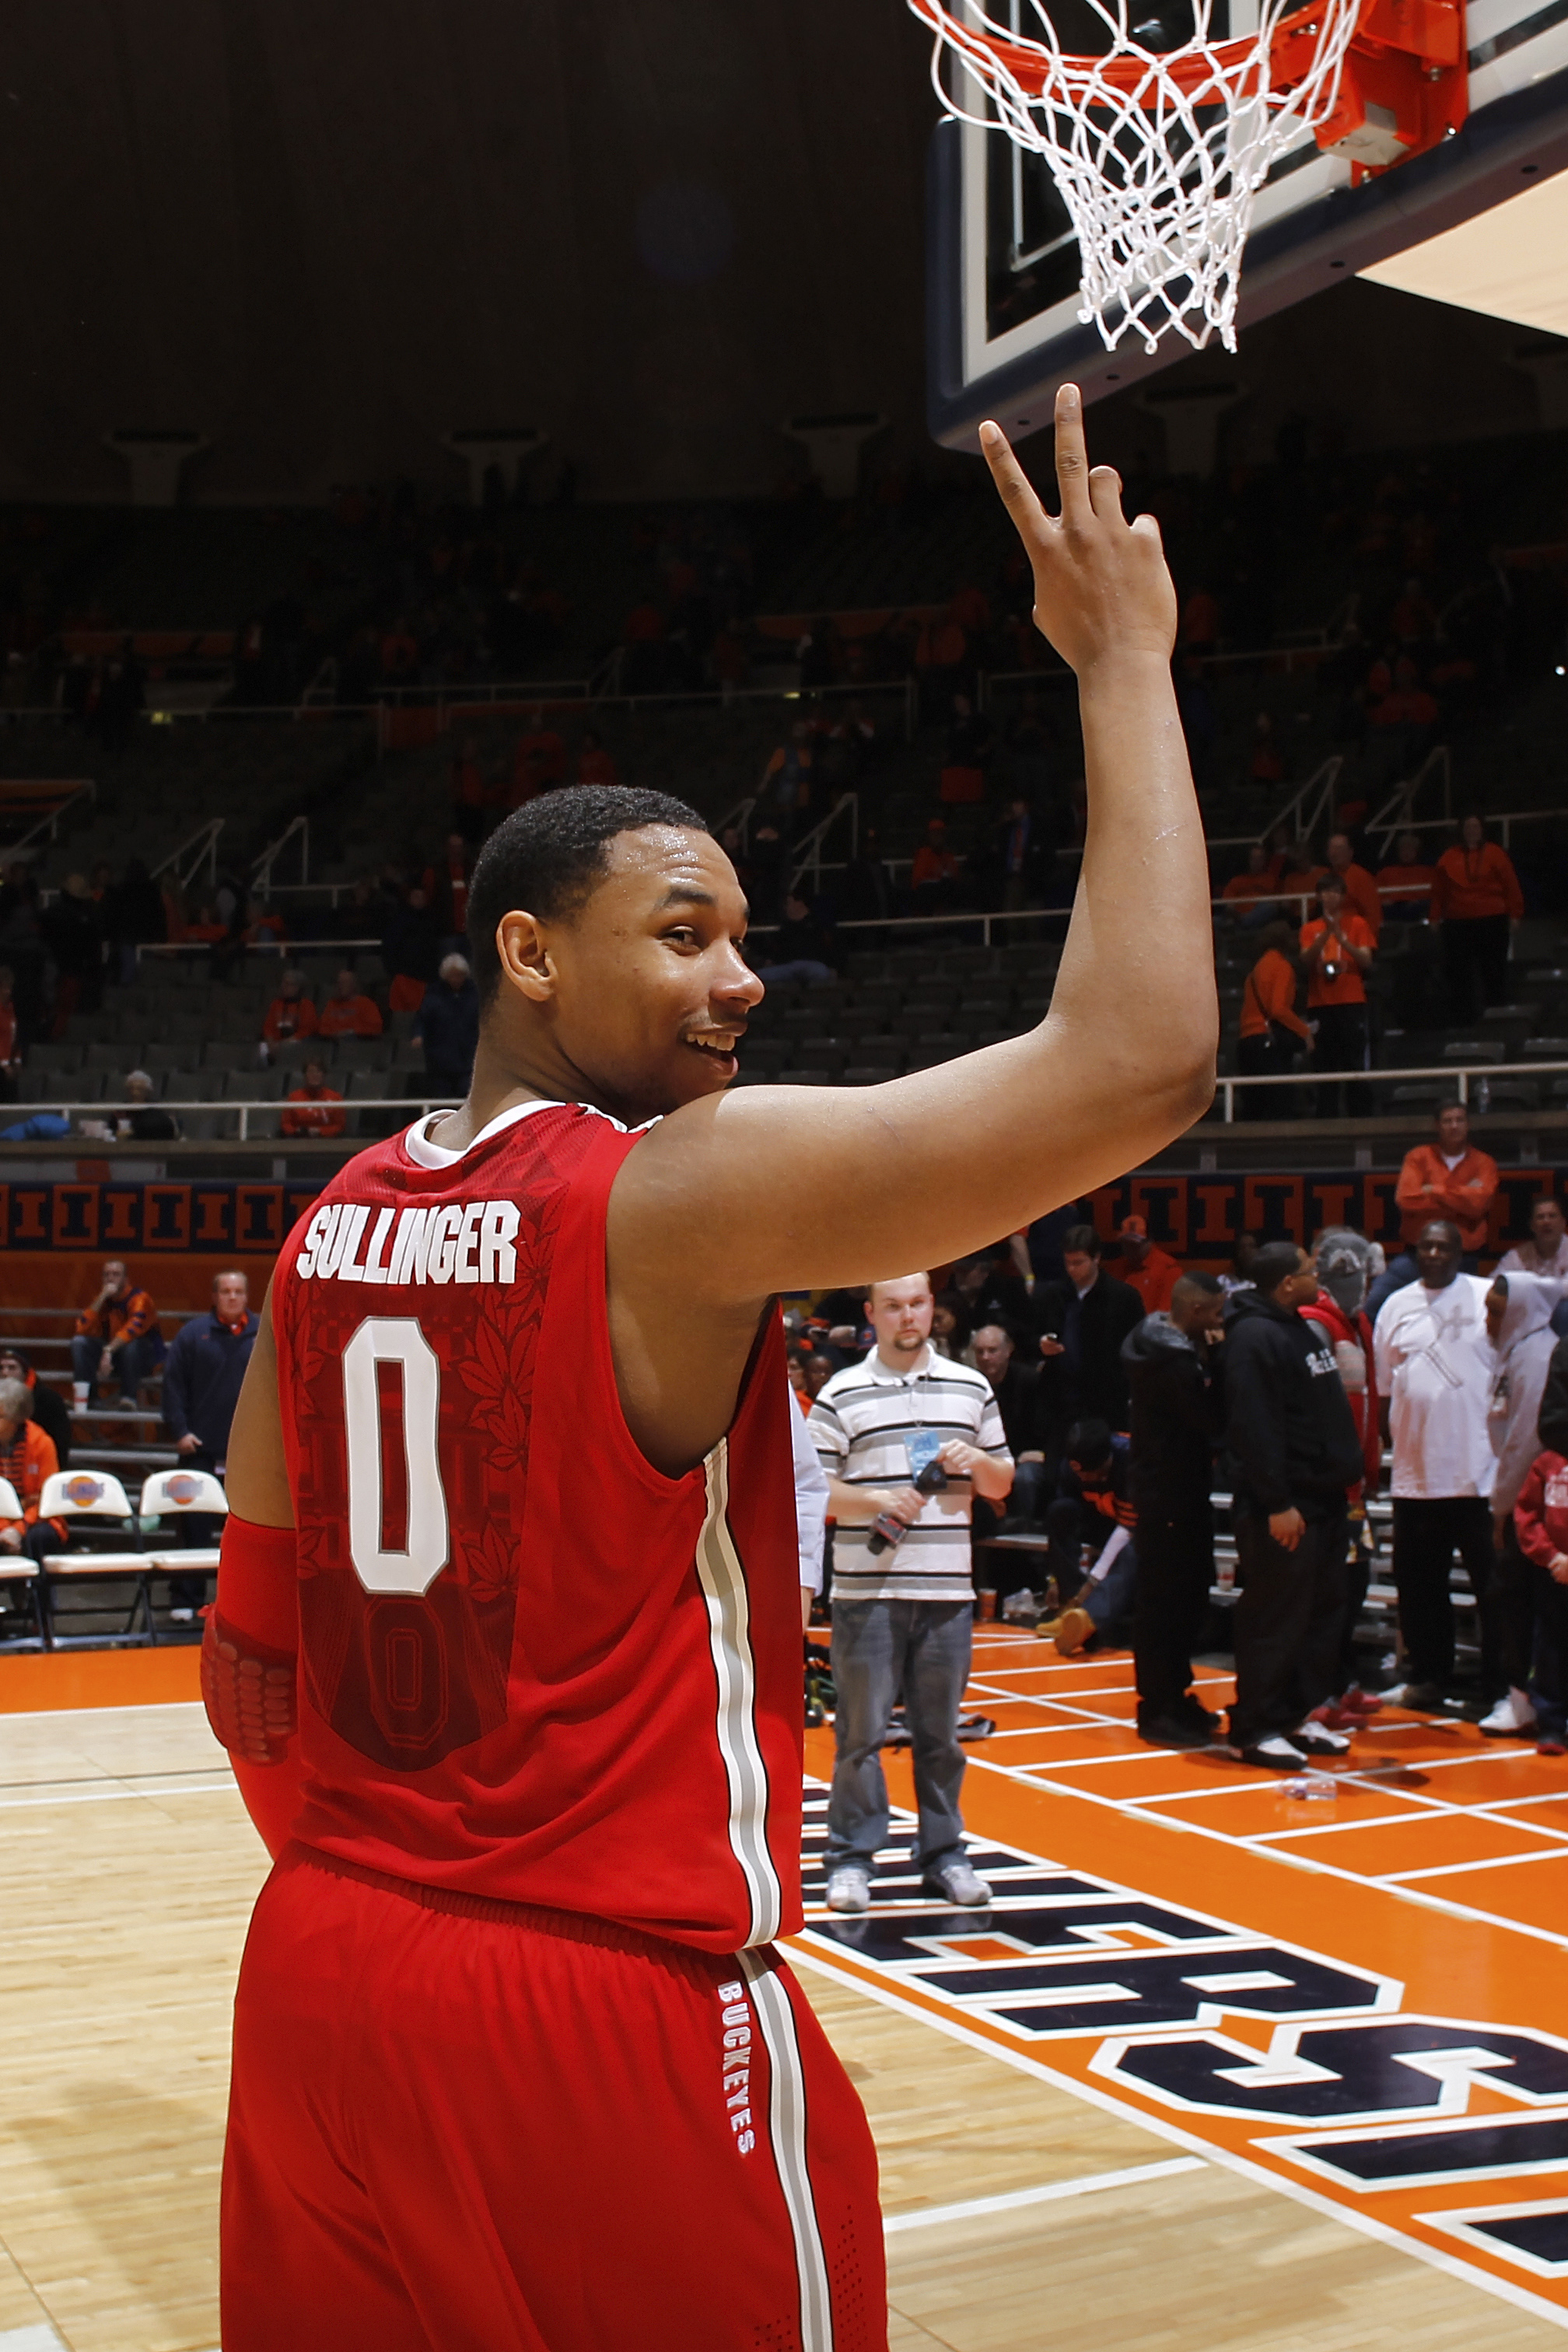 CHAMPAIGN, IL - JANUARY 22: Jared Sullinger #0 of the Ohio State Buckeyes gestures toward the student section as he leaves the floor after the game against the Illinois Fighting Illini at Assembly Hall on January 22, 2011 in Champaign, Illinois. Ohio Stat